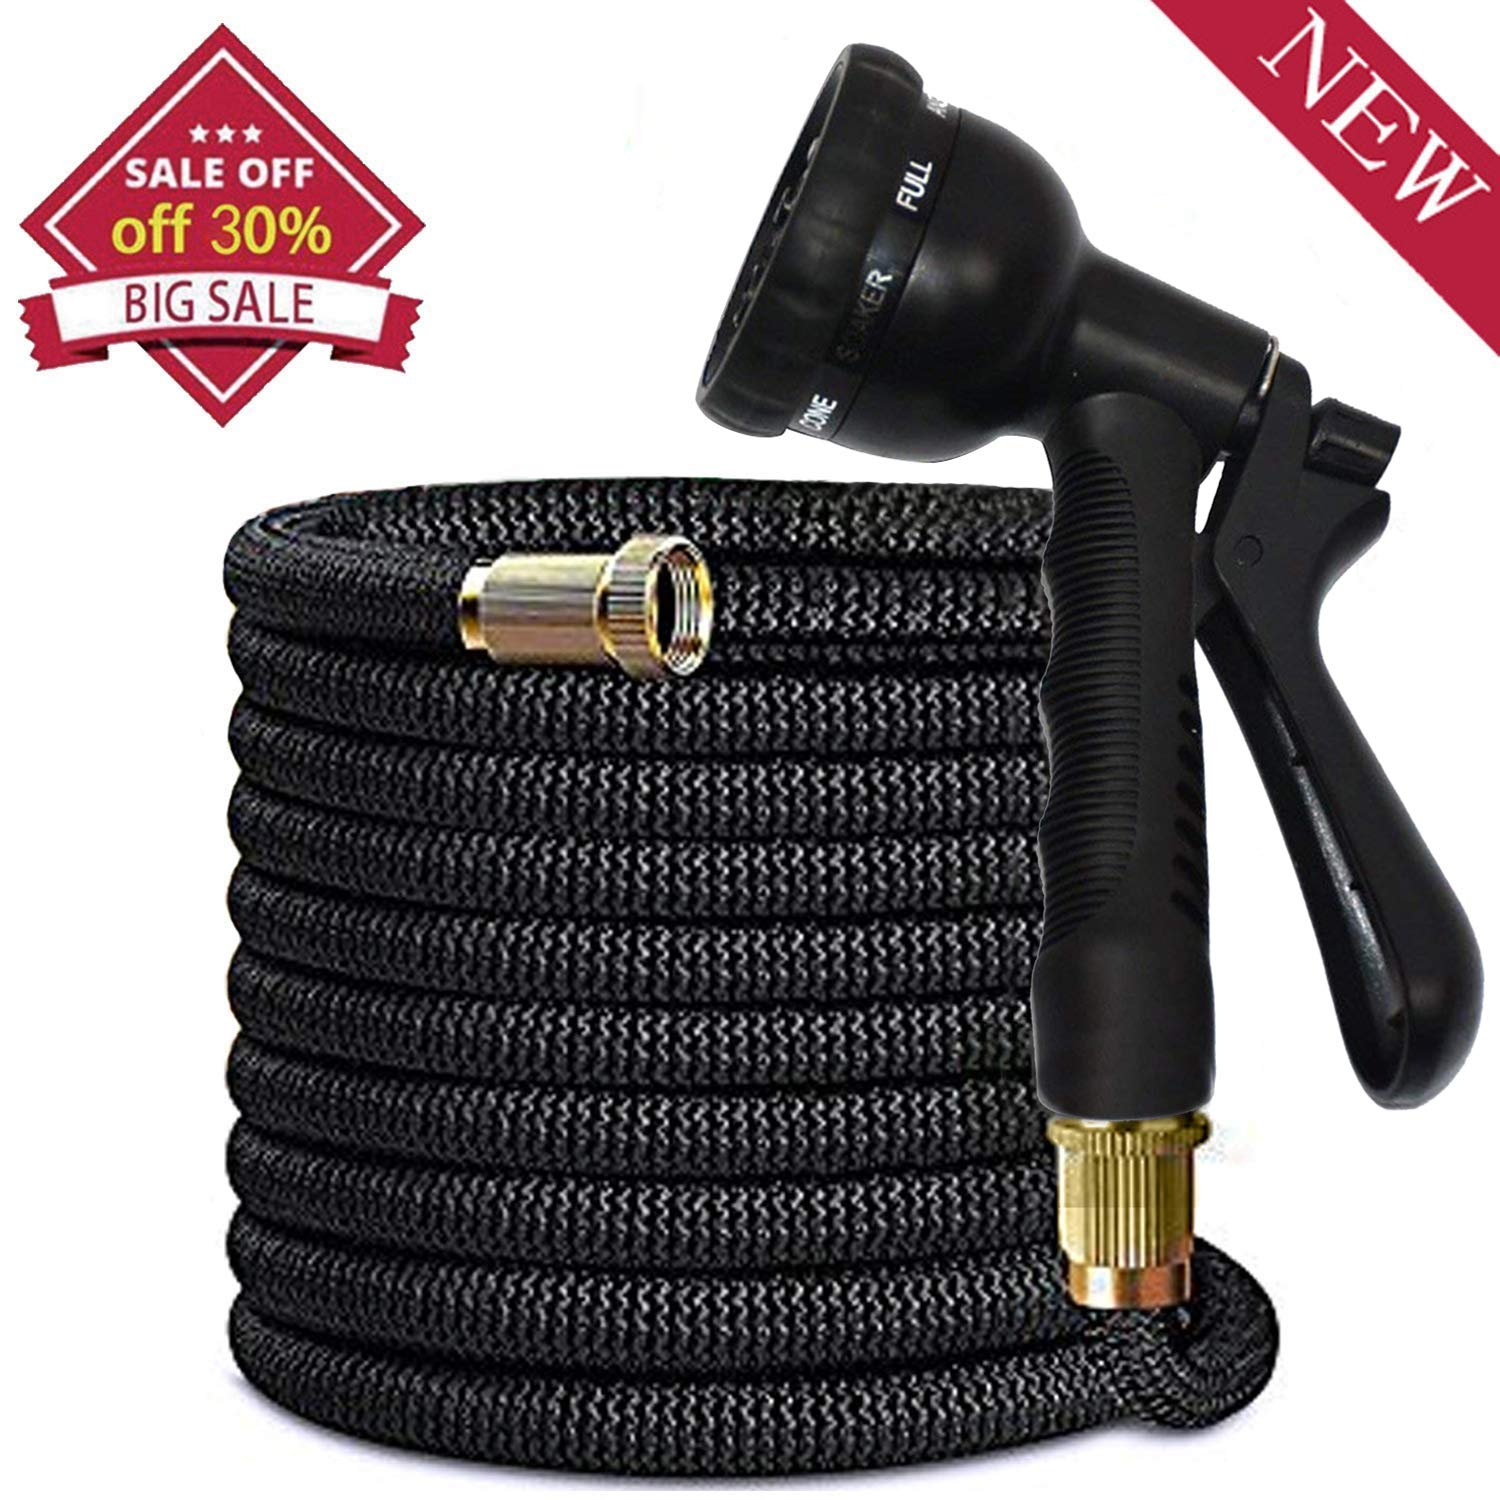 Garden Hose 50ft with Spray Nozzle - 8 Functions Flexible and Expandable Water Hoses with Double Latex Core, 3/4 Solid Brass Fittings Strong Material Wagrass